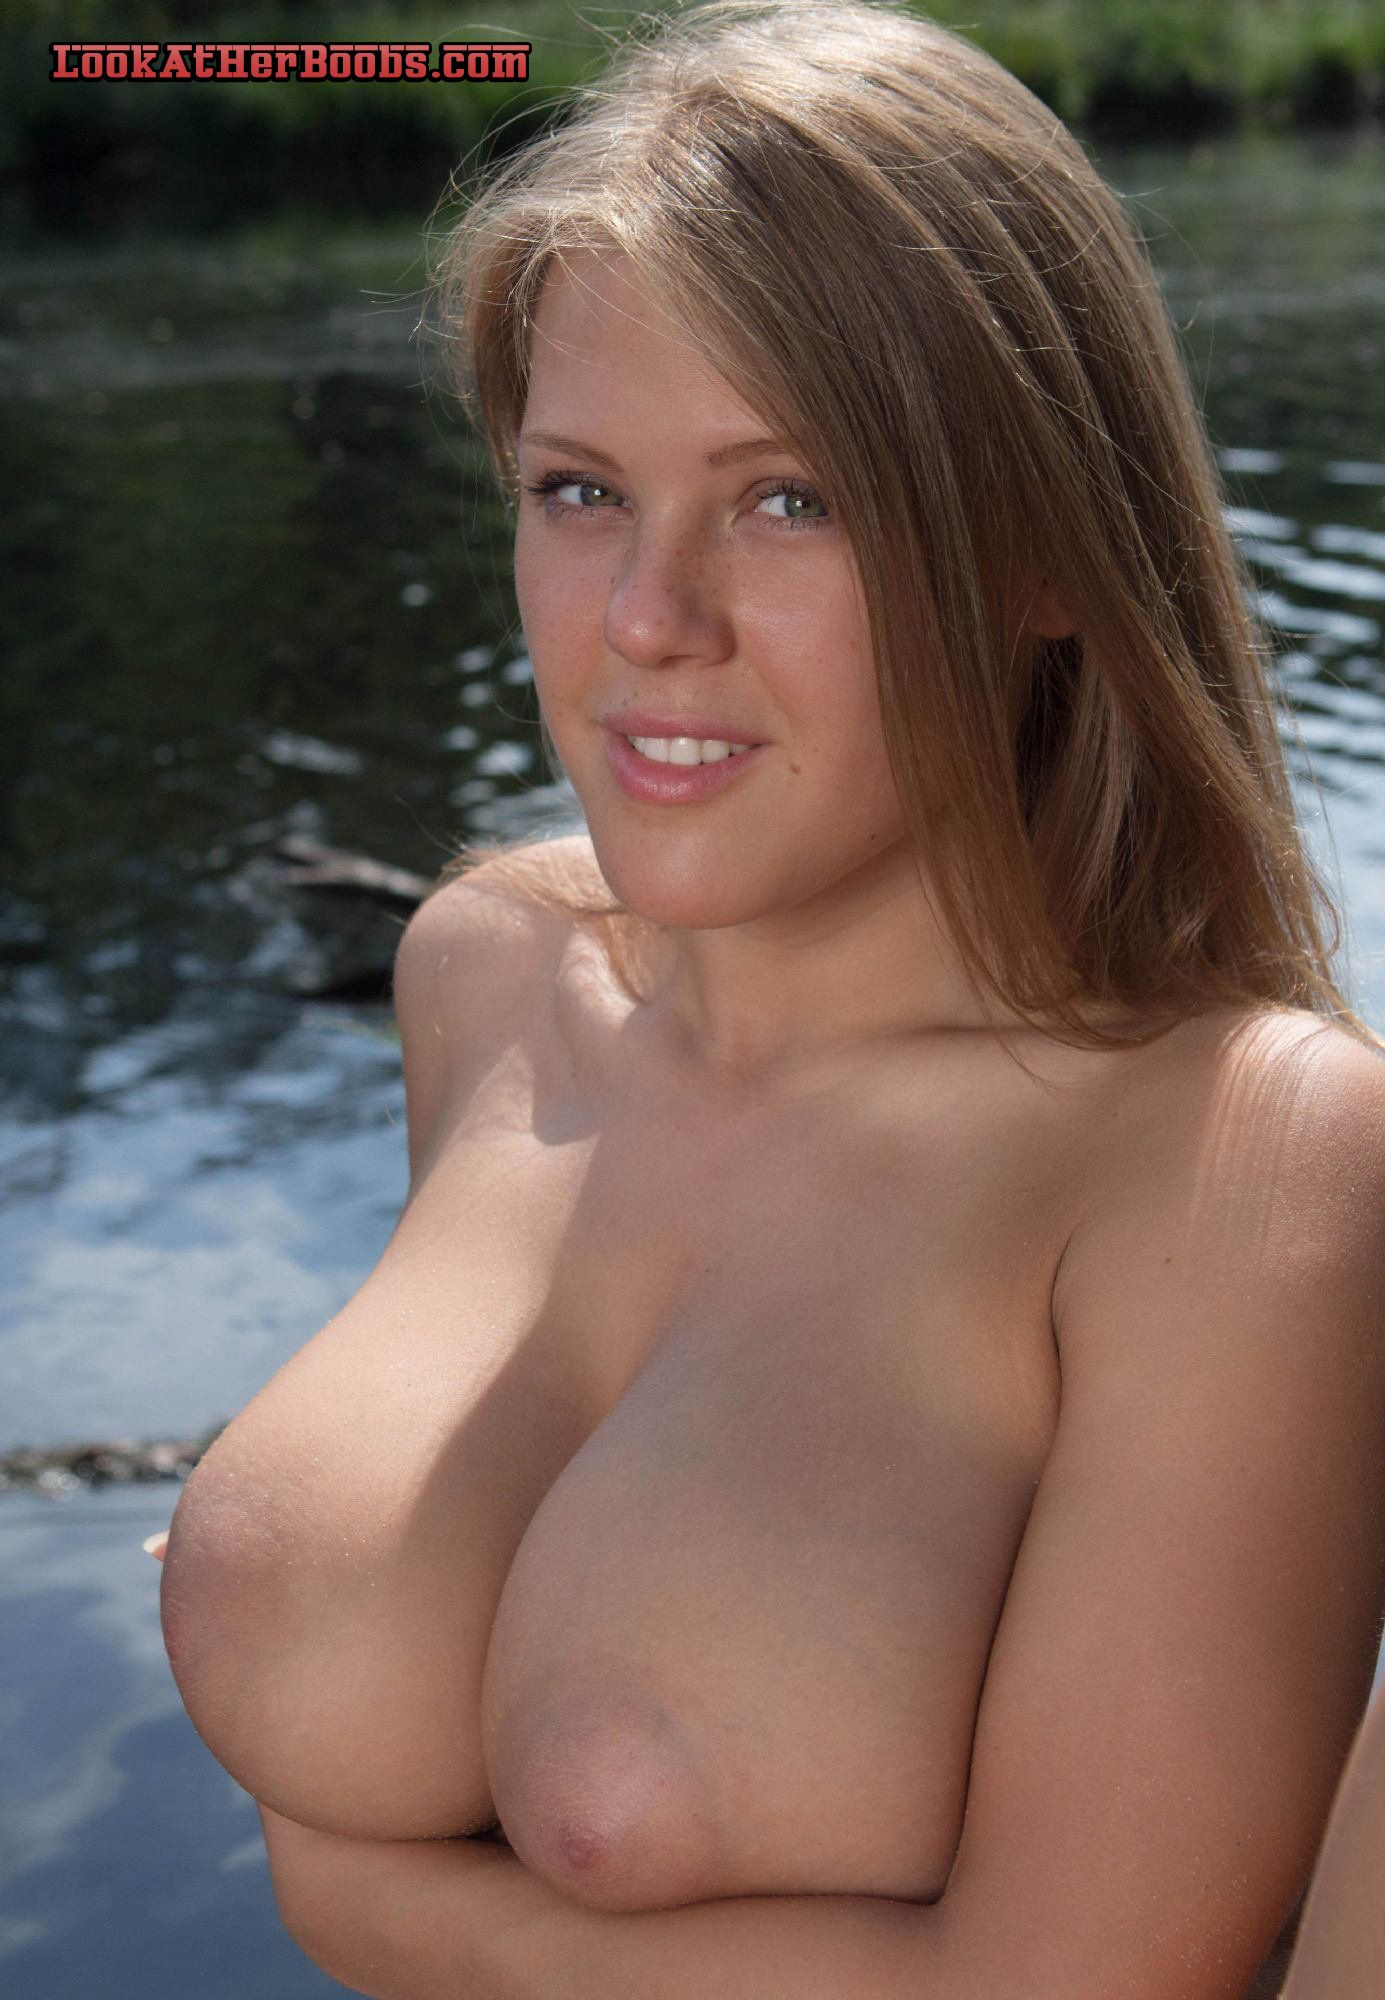 topless coed with puffy nipples